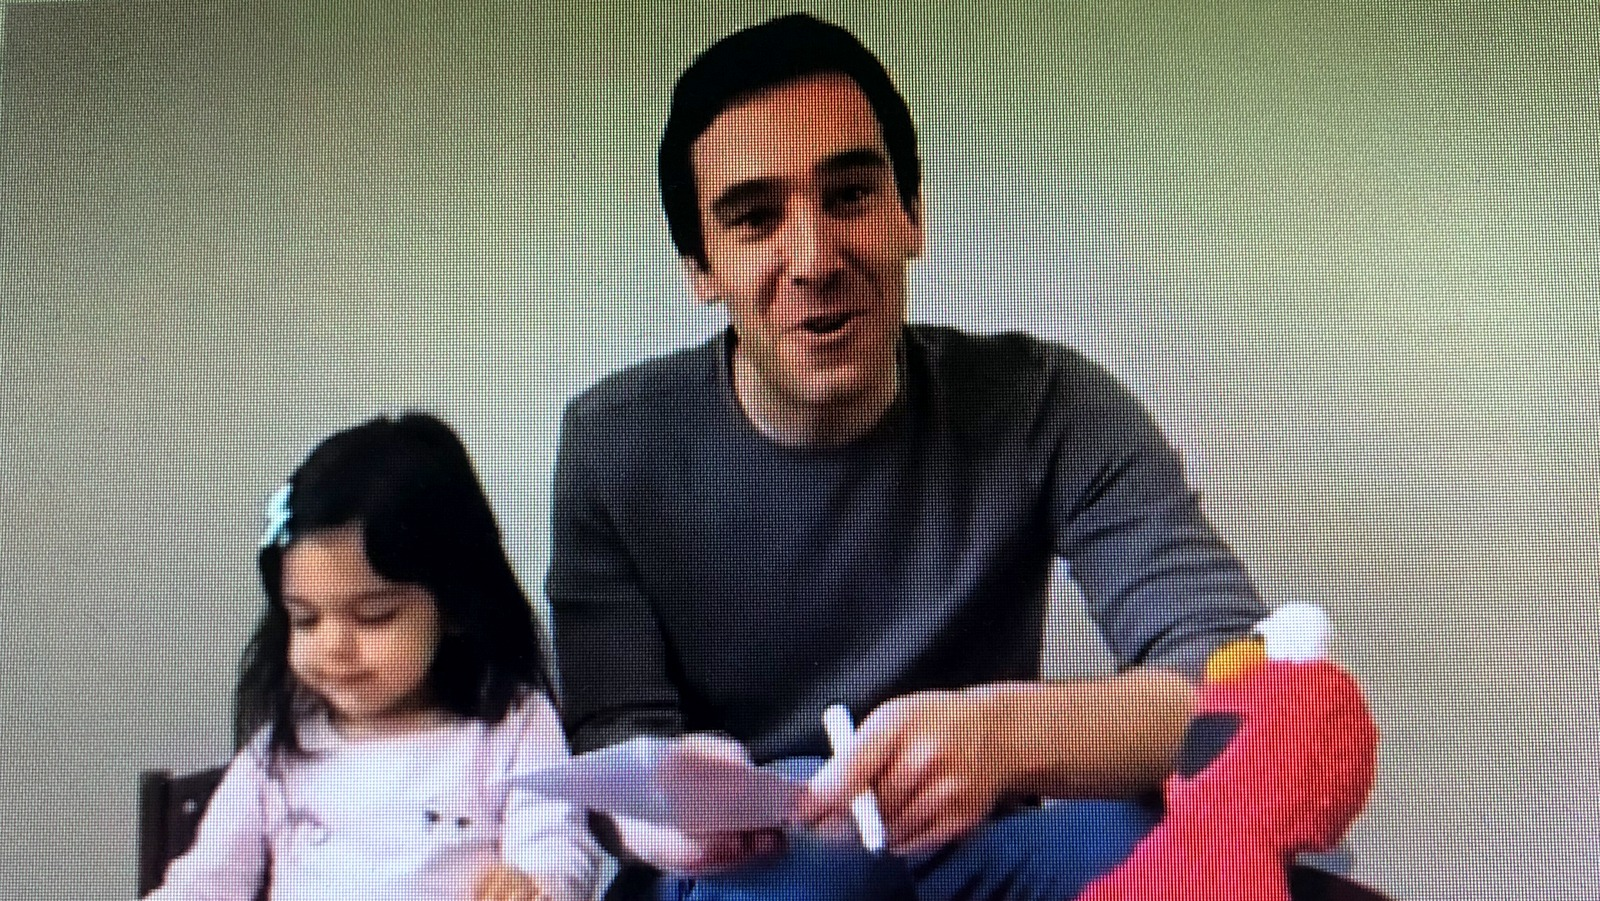 Zeke Cohen enlists his daughter Maya and Elmo for a campaign video. (@Zeke_Cohen)